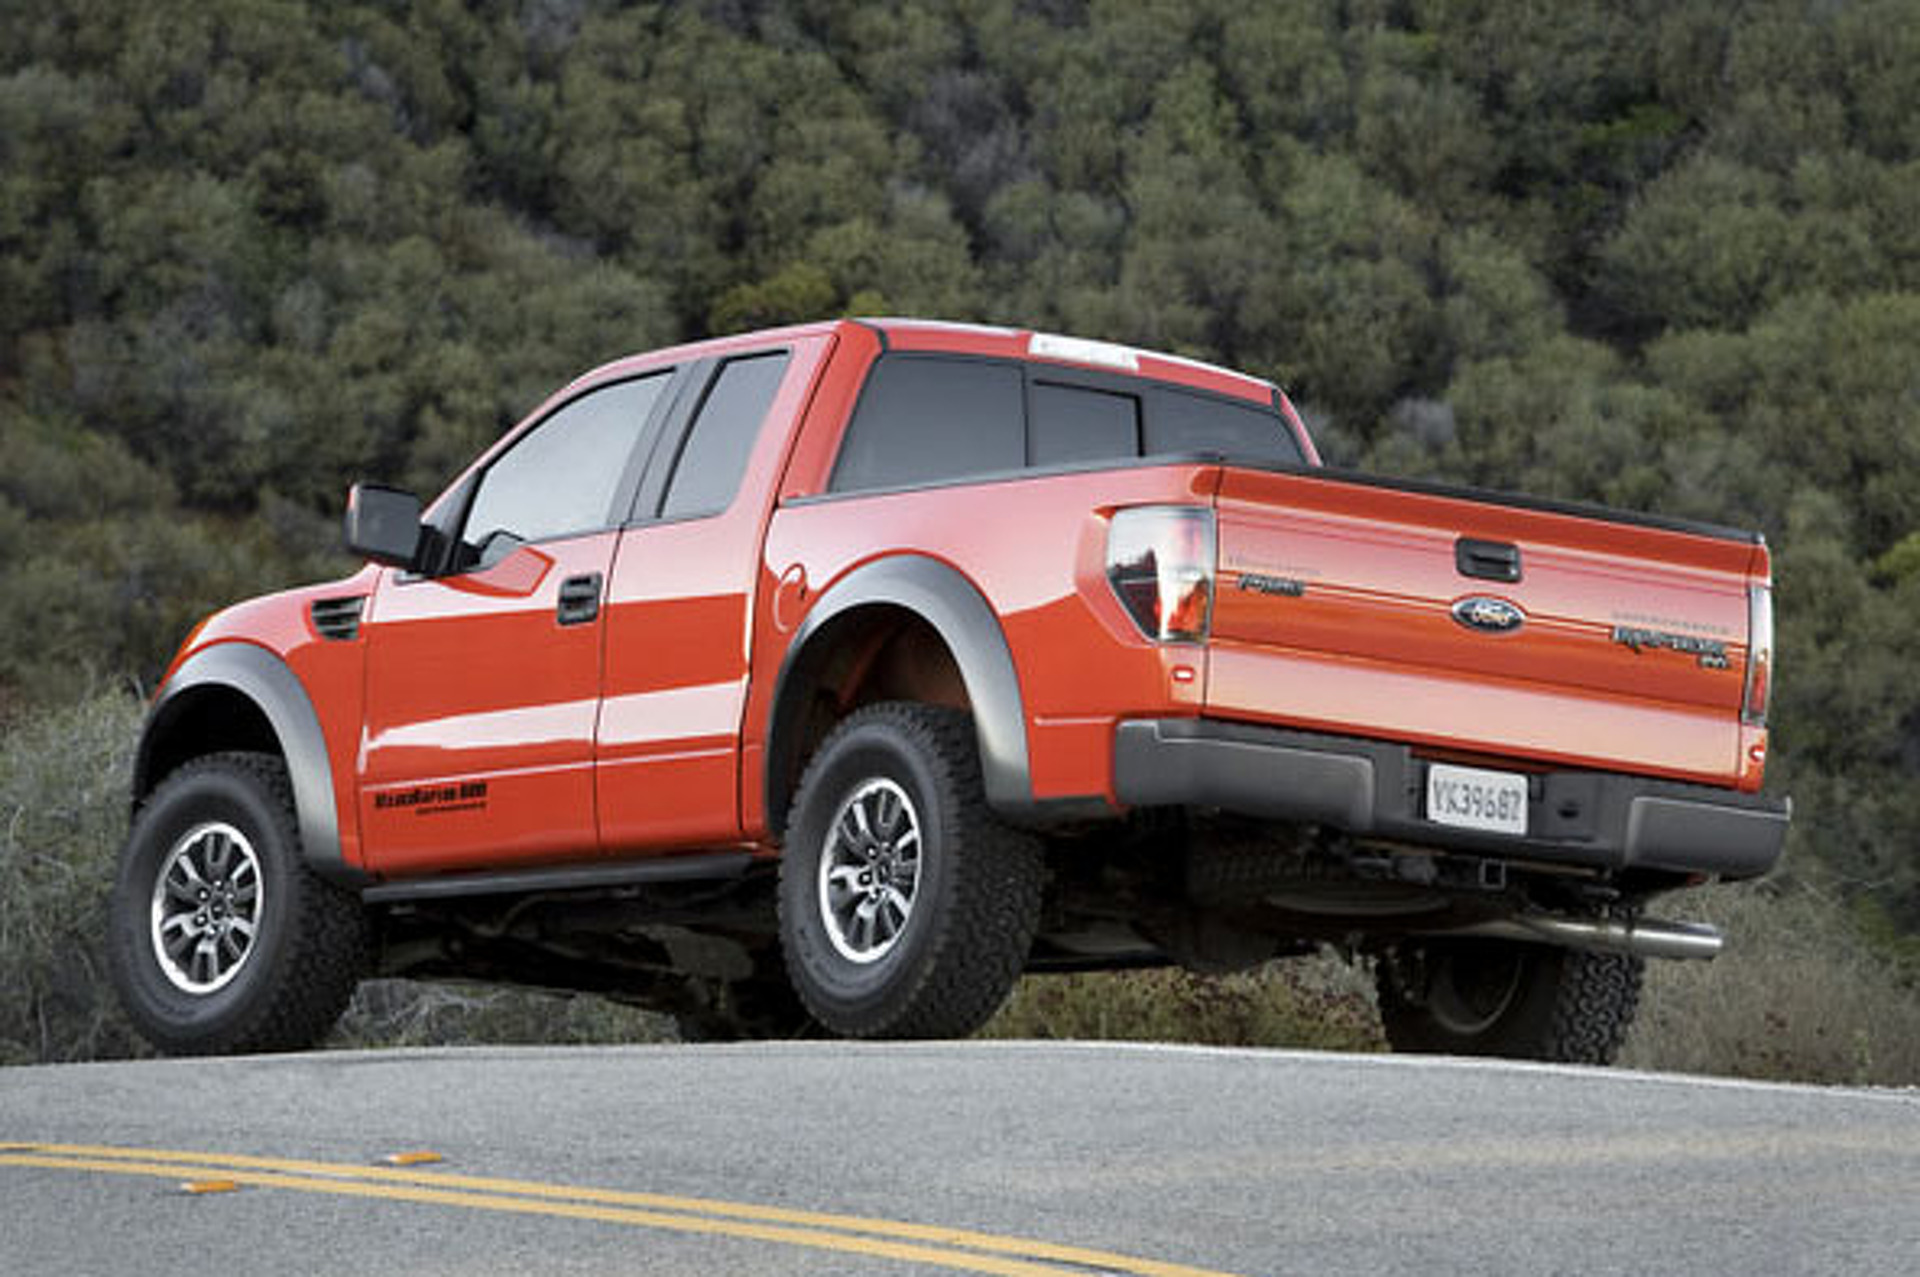 eBay Car of the Week: 2012 Ford F-150 Hennessey VelociRaptor